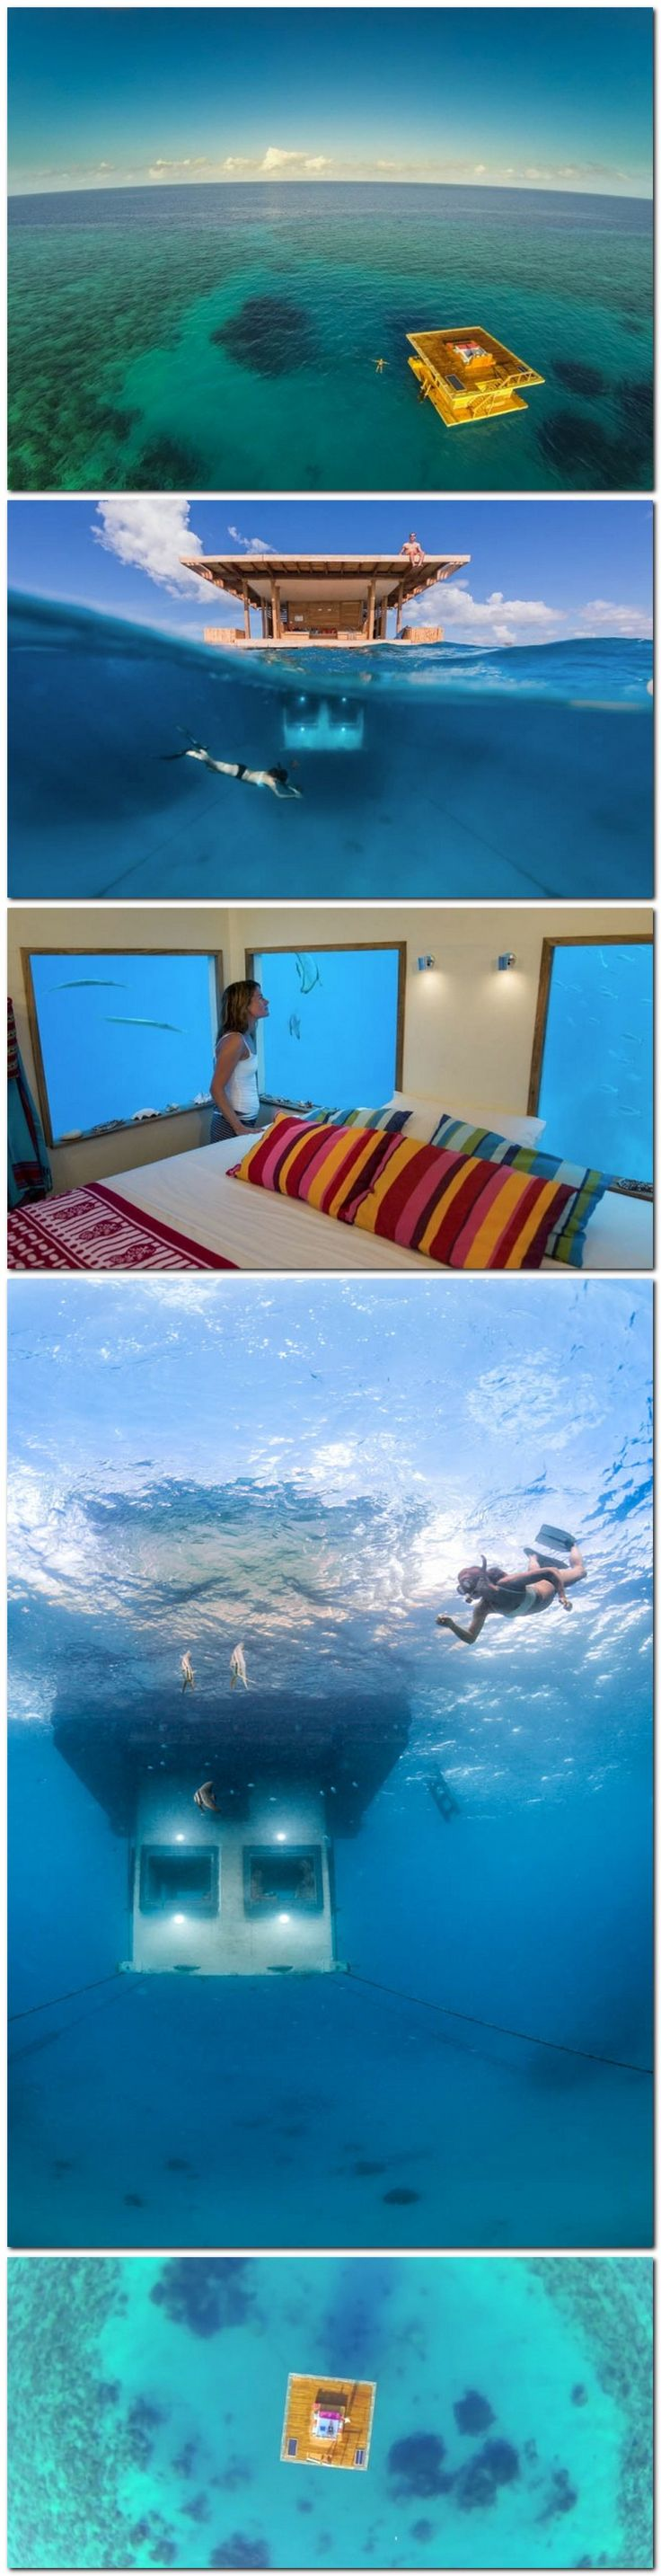 Manta Underwater Hotel Room in Zanzibar... Guess we'll have to go back